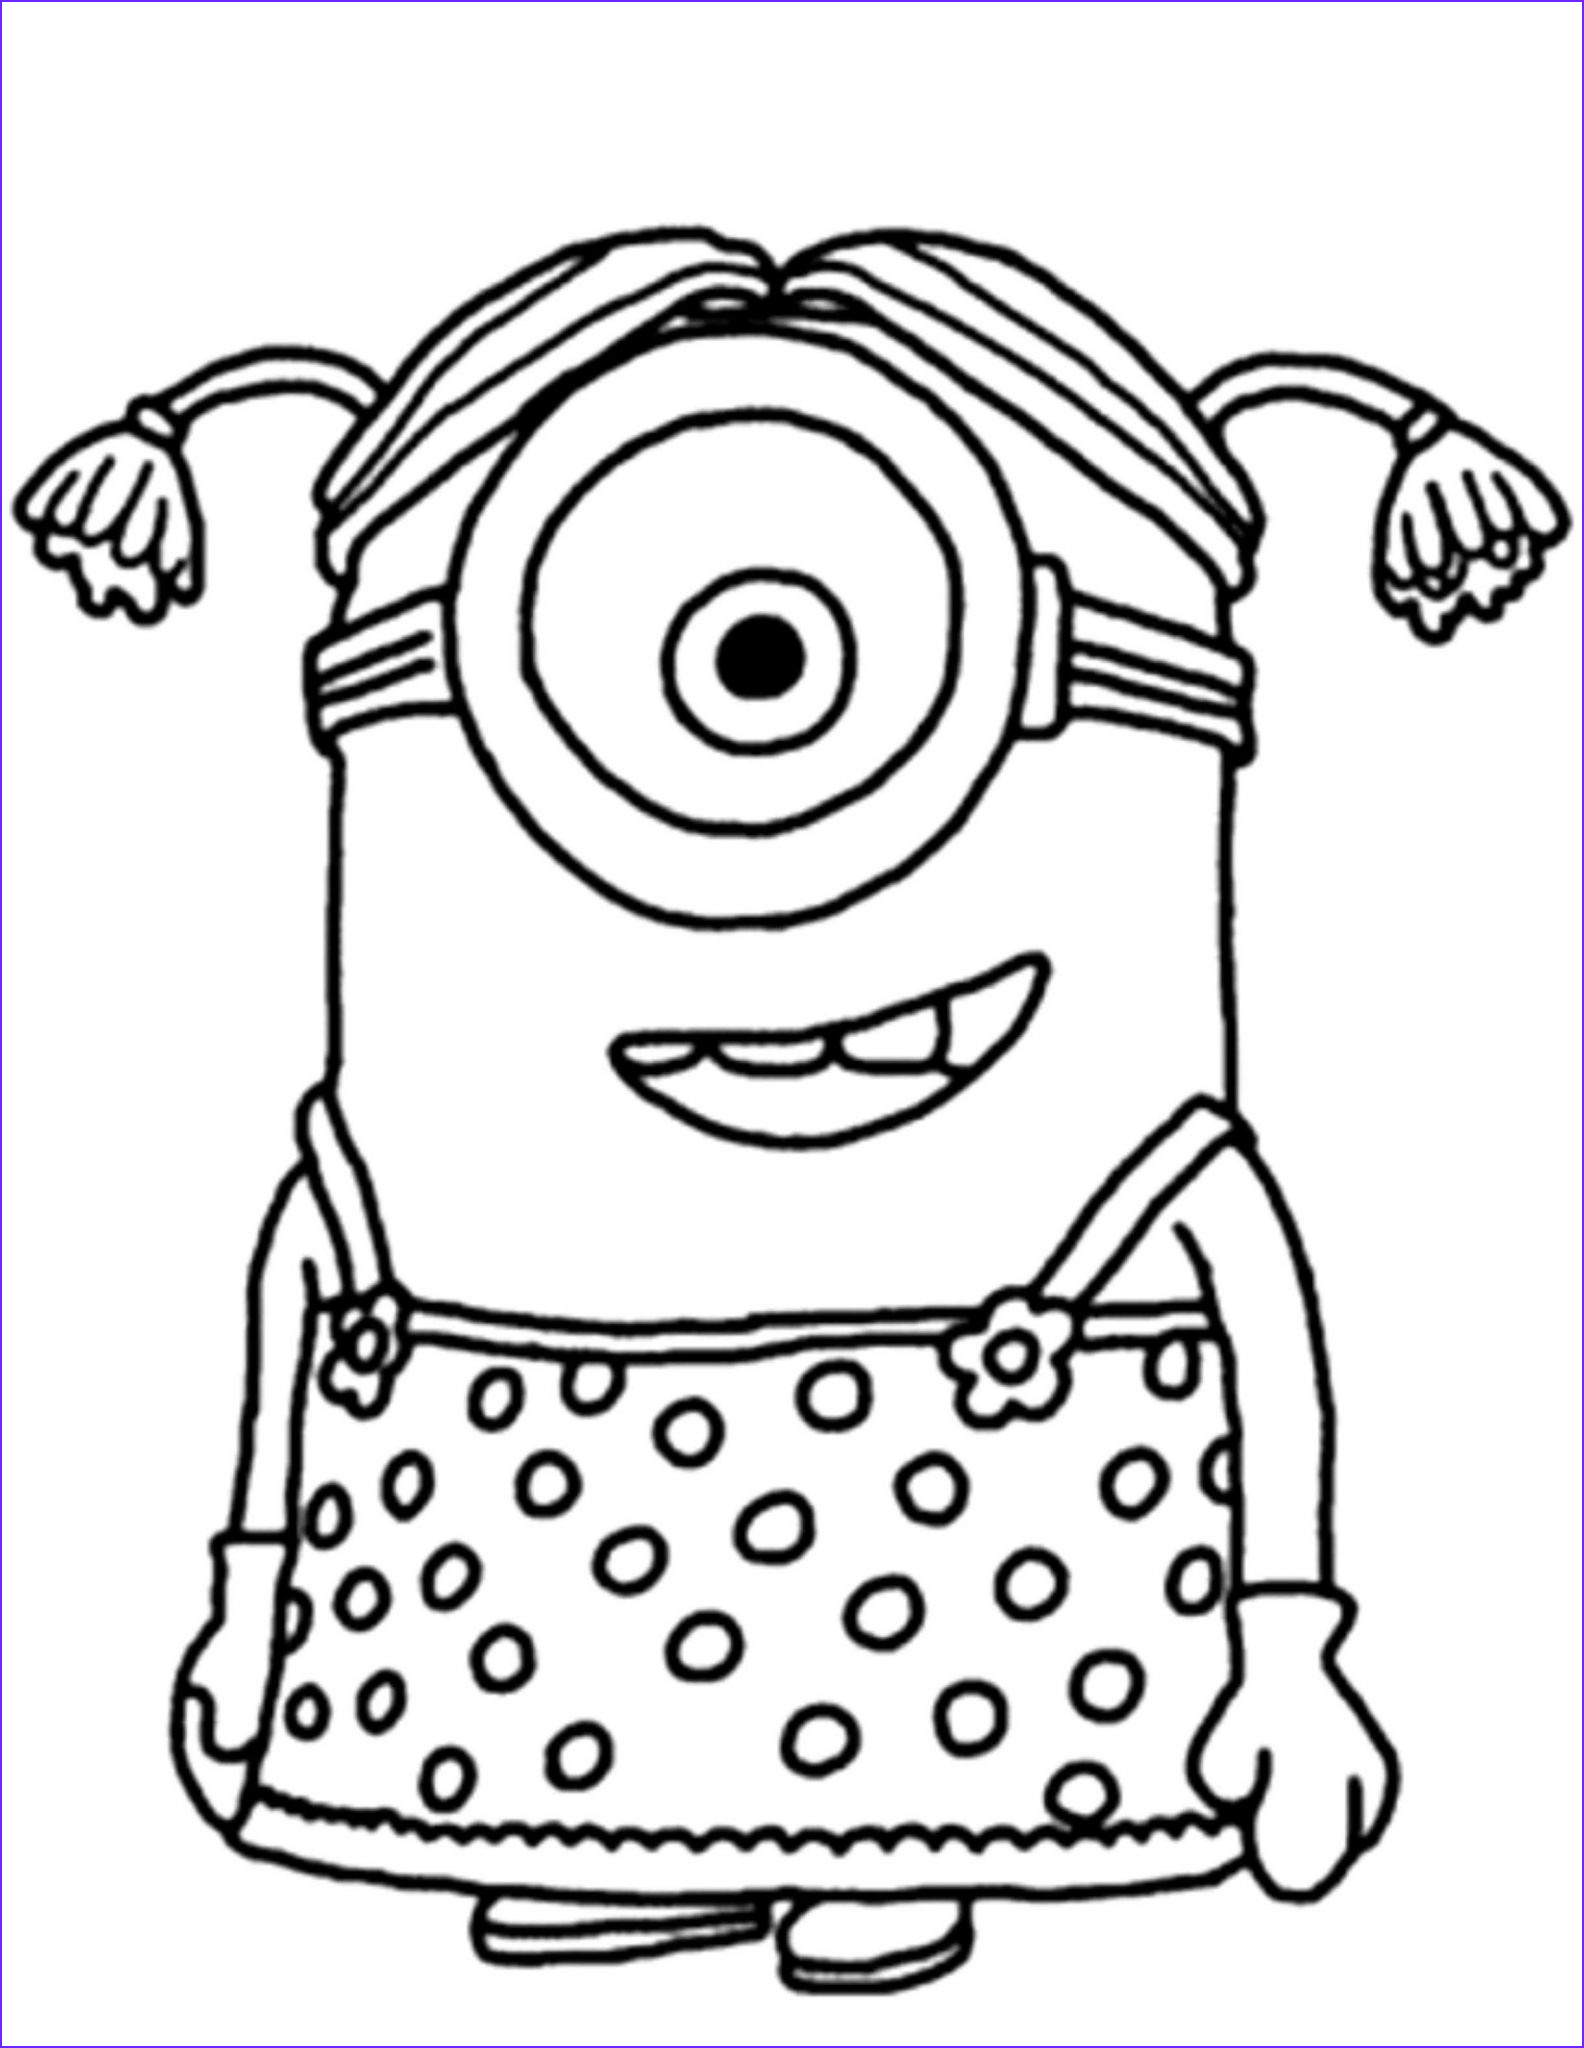 Minions Coloring Page New Gallery Print & Download Minion Coloring Pages for Kids to Have